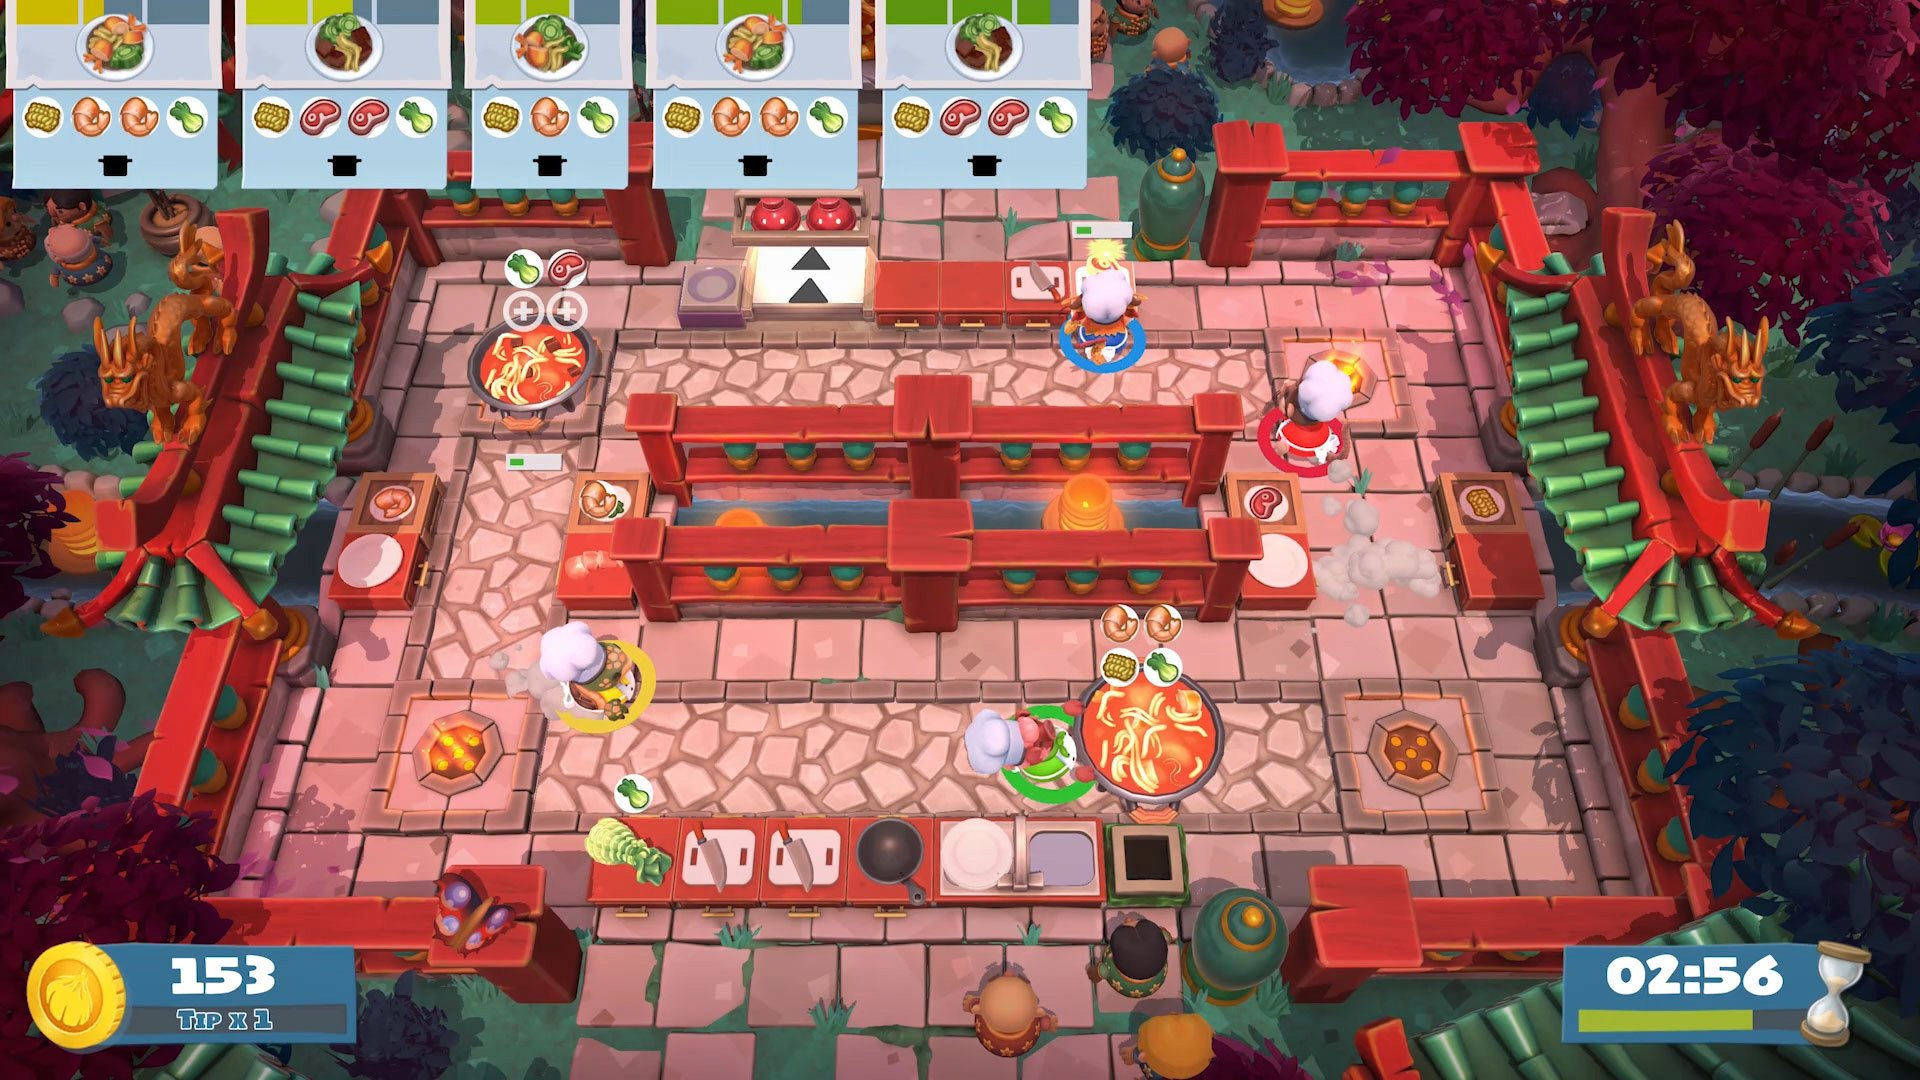 Fire up Overcooked 2 for the Spring Festival update